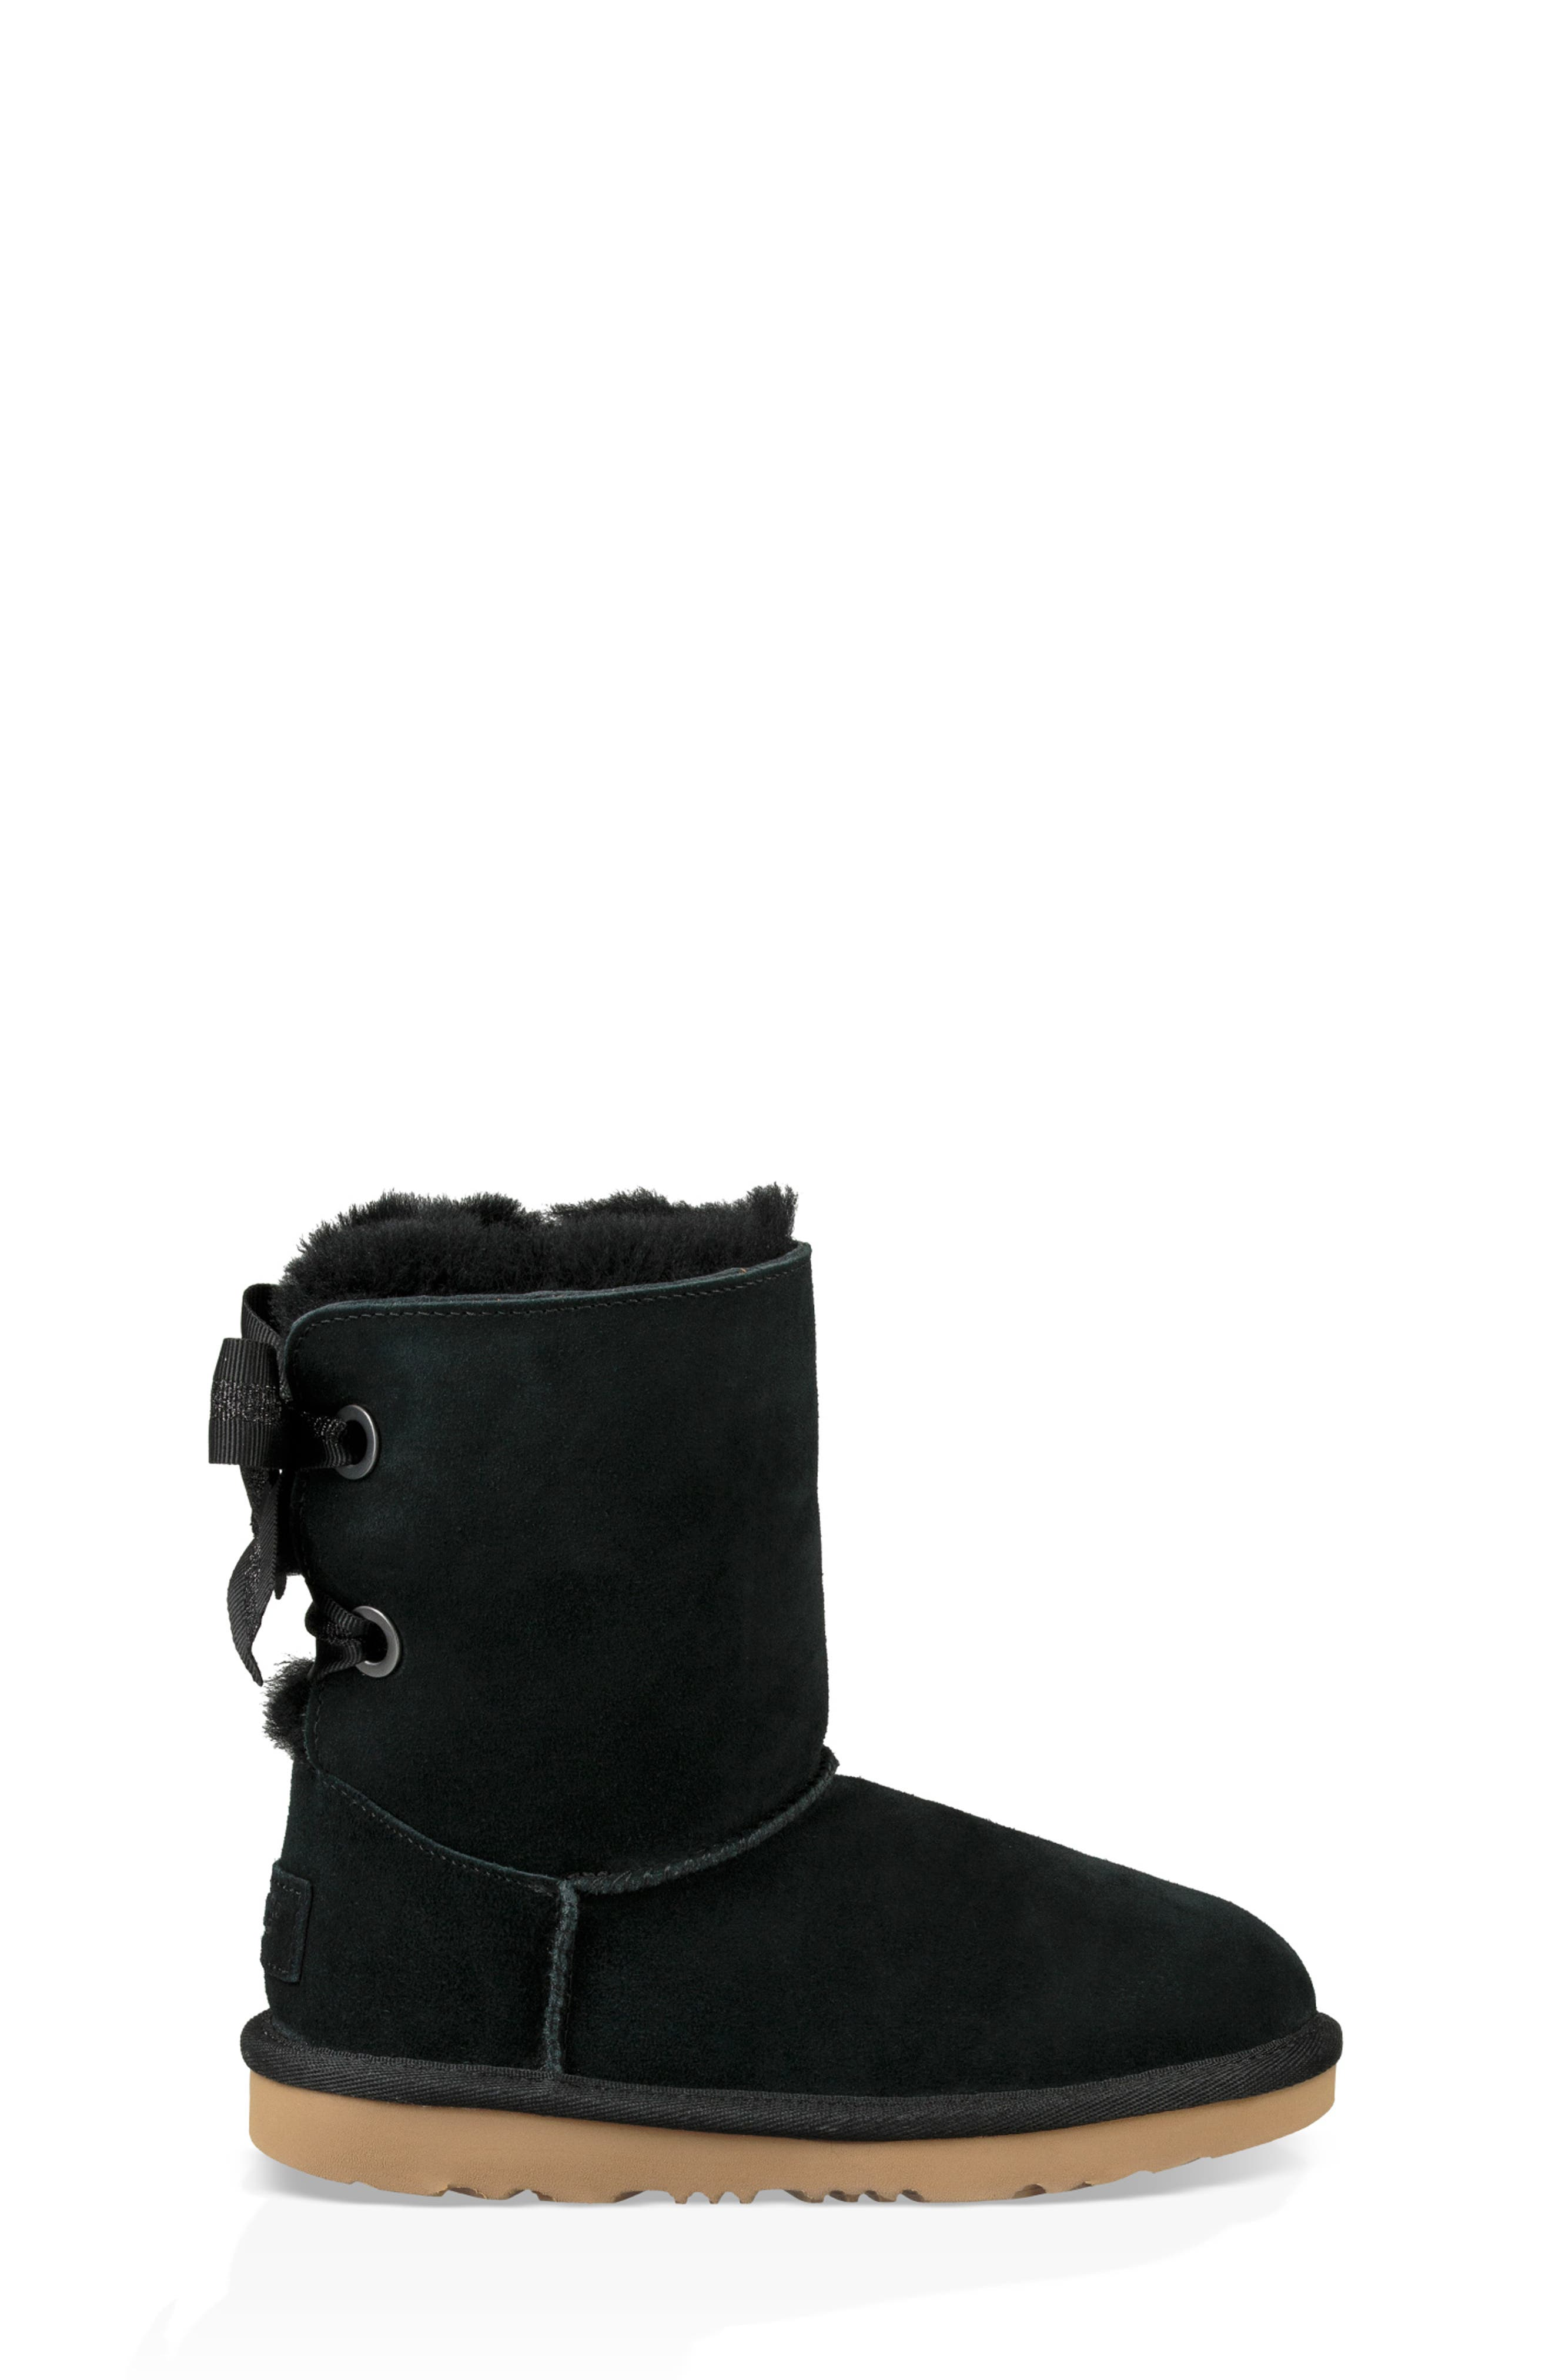 UGG<SUP>®</SUP>, Customizable Bailey Bow II Genuine Shearling Boot, Alternate thumbnail 3, color, BLACK